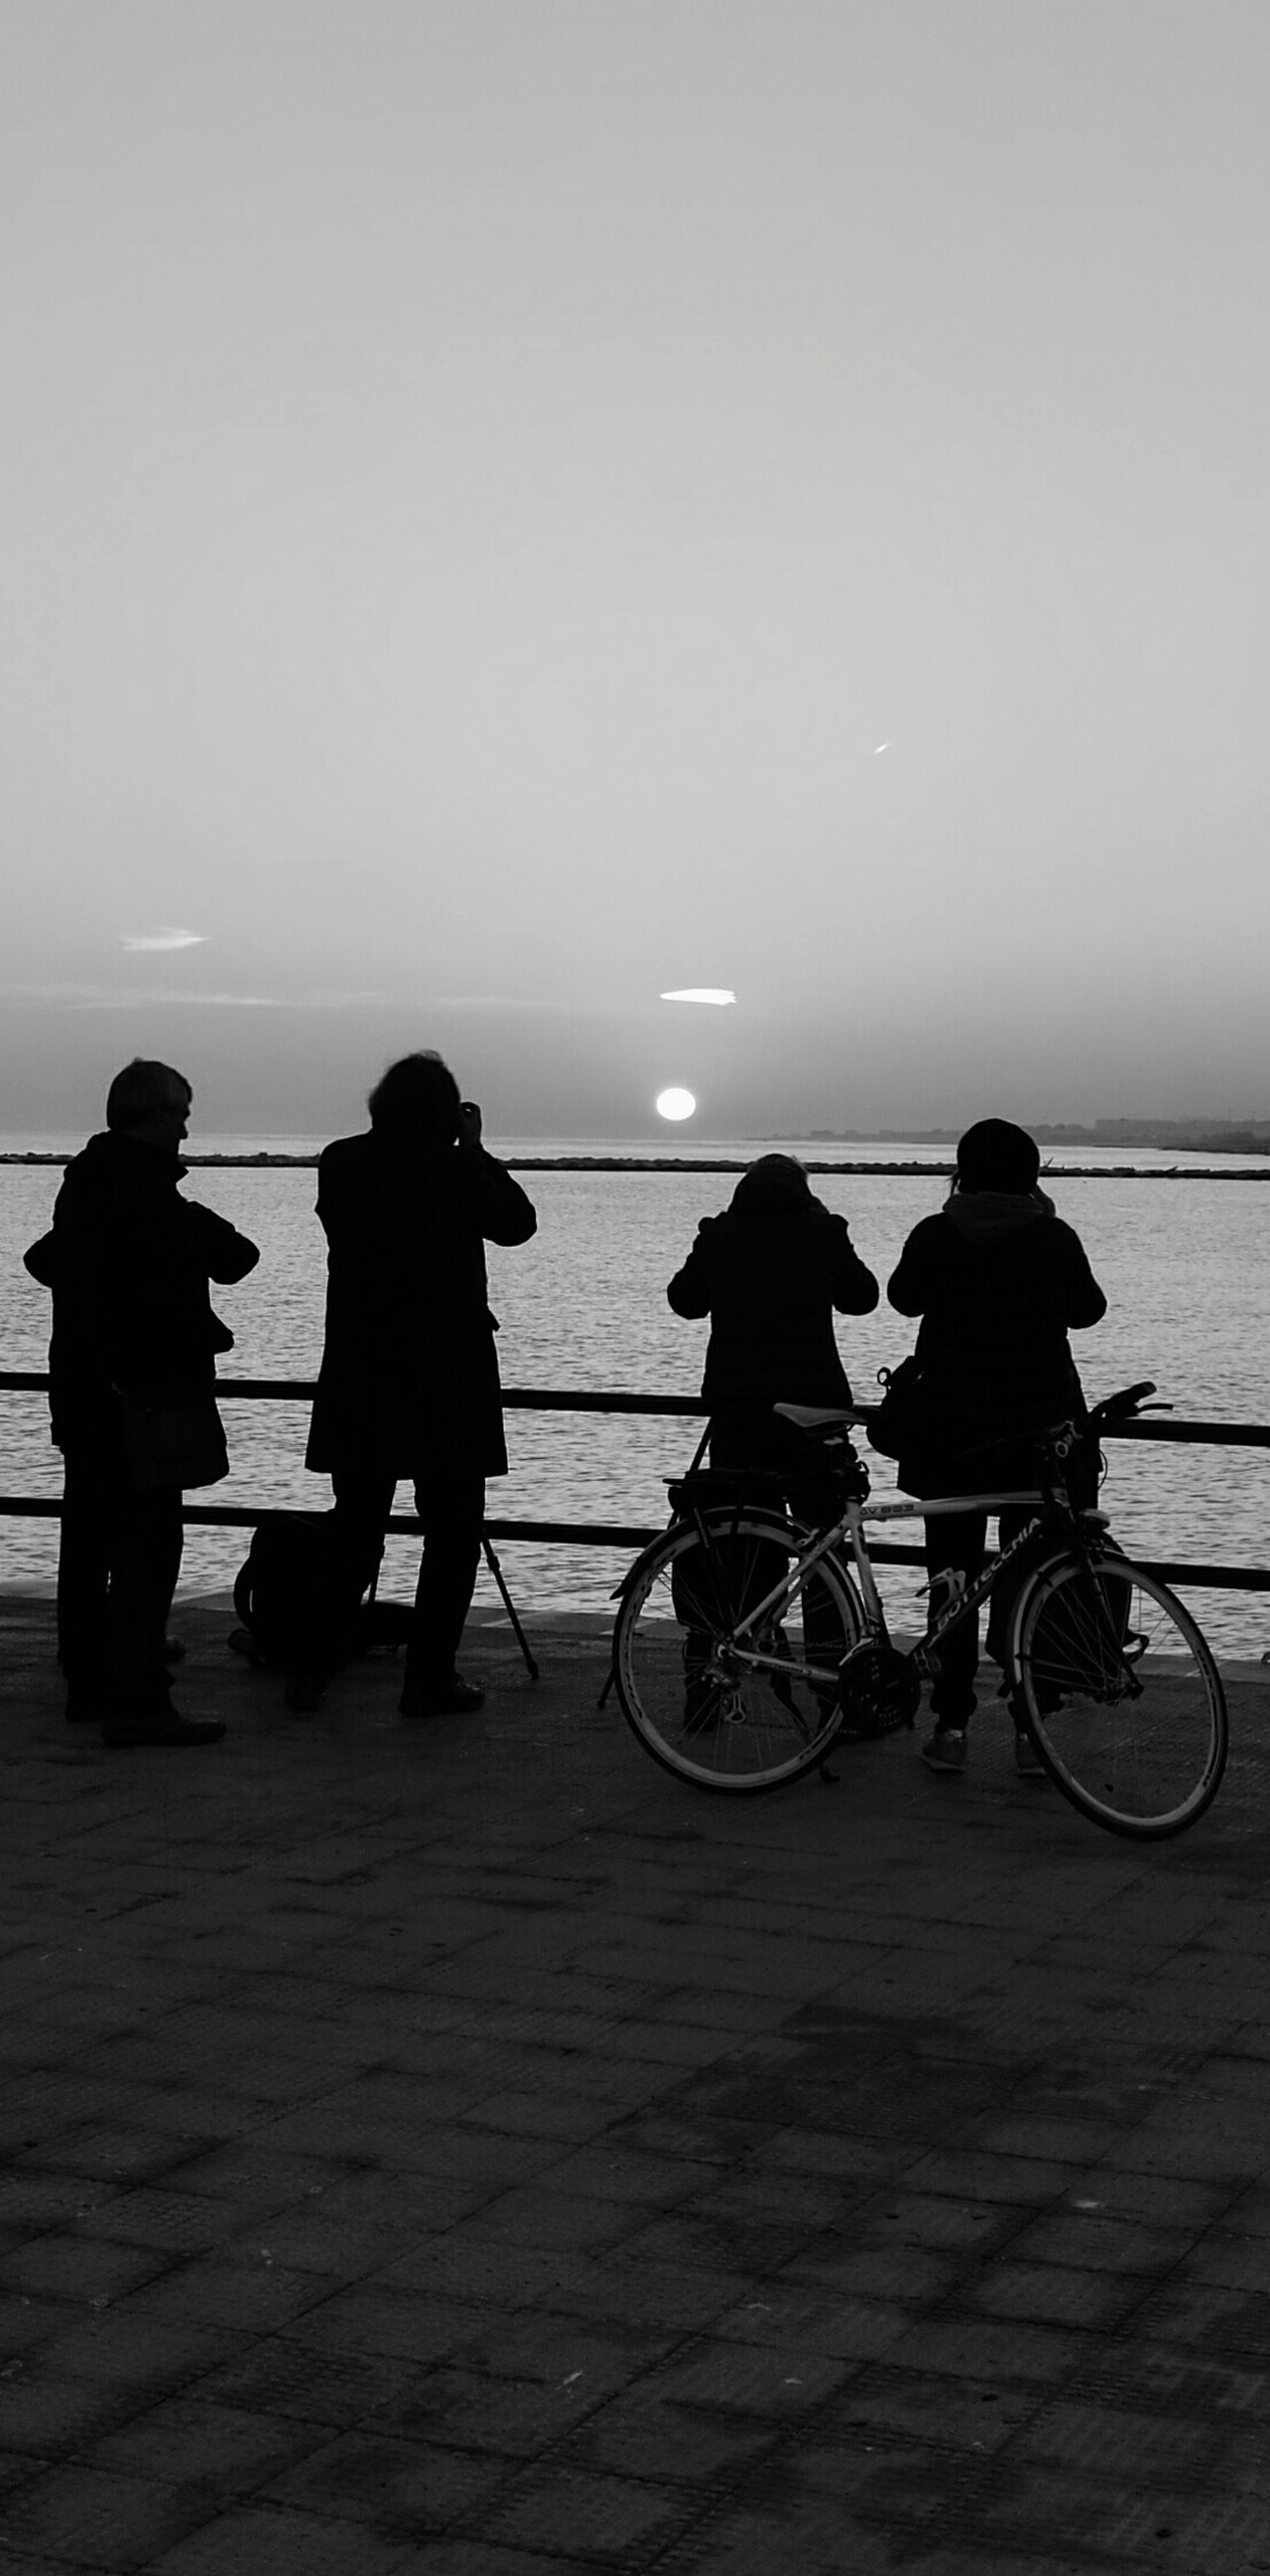 Silhouette People Bicycle Outdoors Sea Sunrise Sunrise_Collection Waiting For The Sun Waiting For The Sunrise BYOPaper! EyeEmNewHere The Photojournalist - 2017 EyeEm Awards